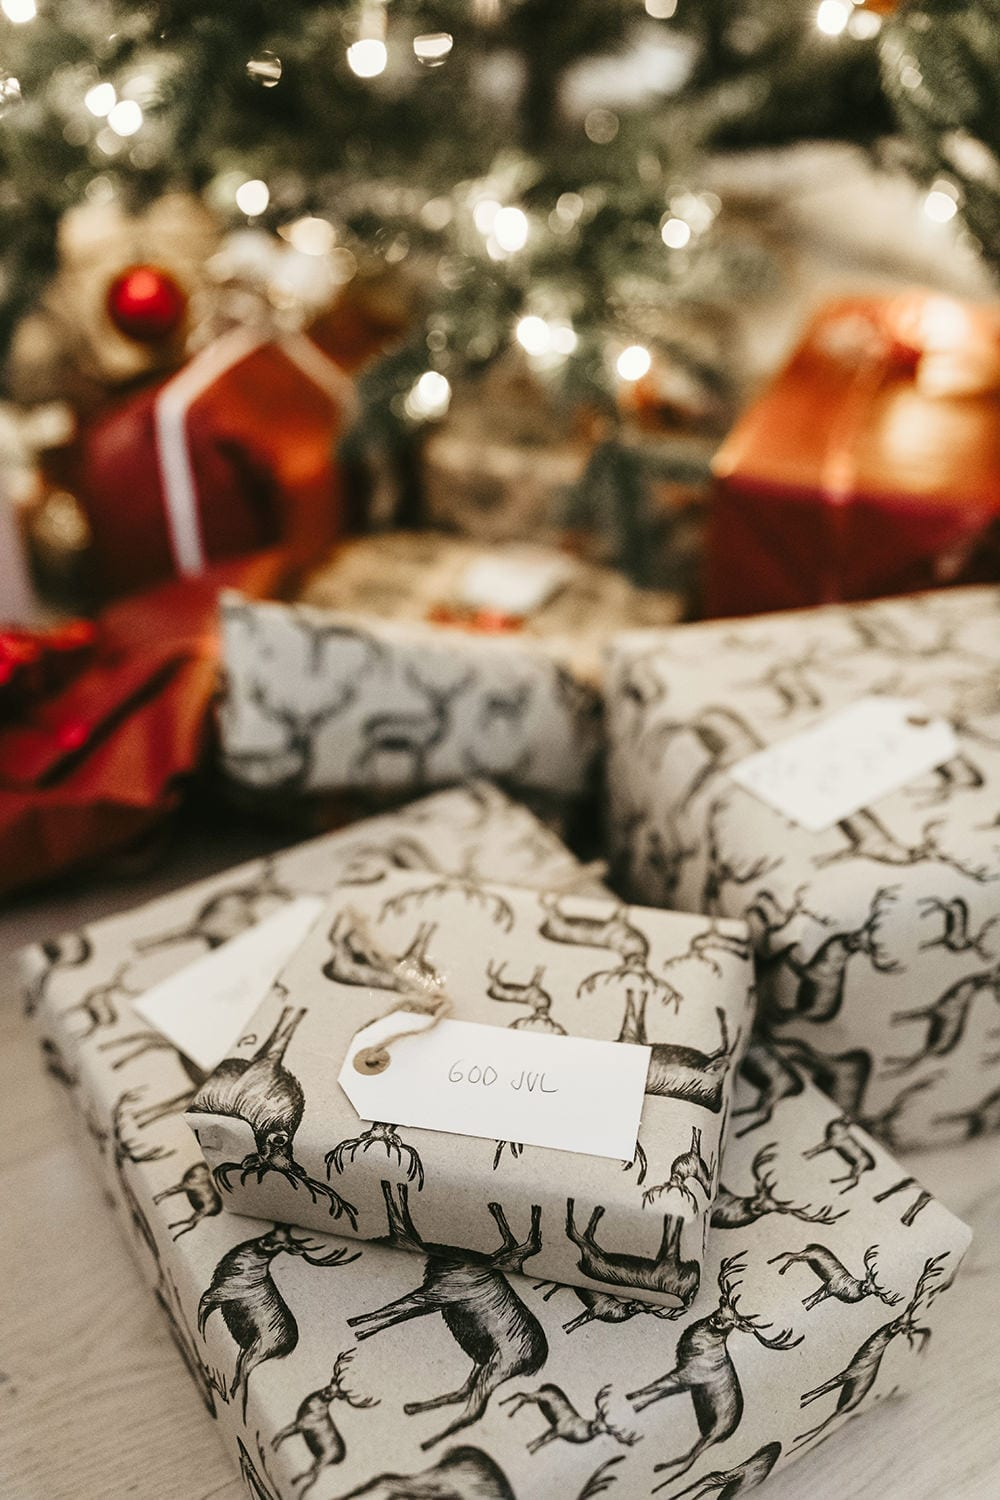 Christmas gifts wrapped in craft paper